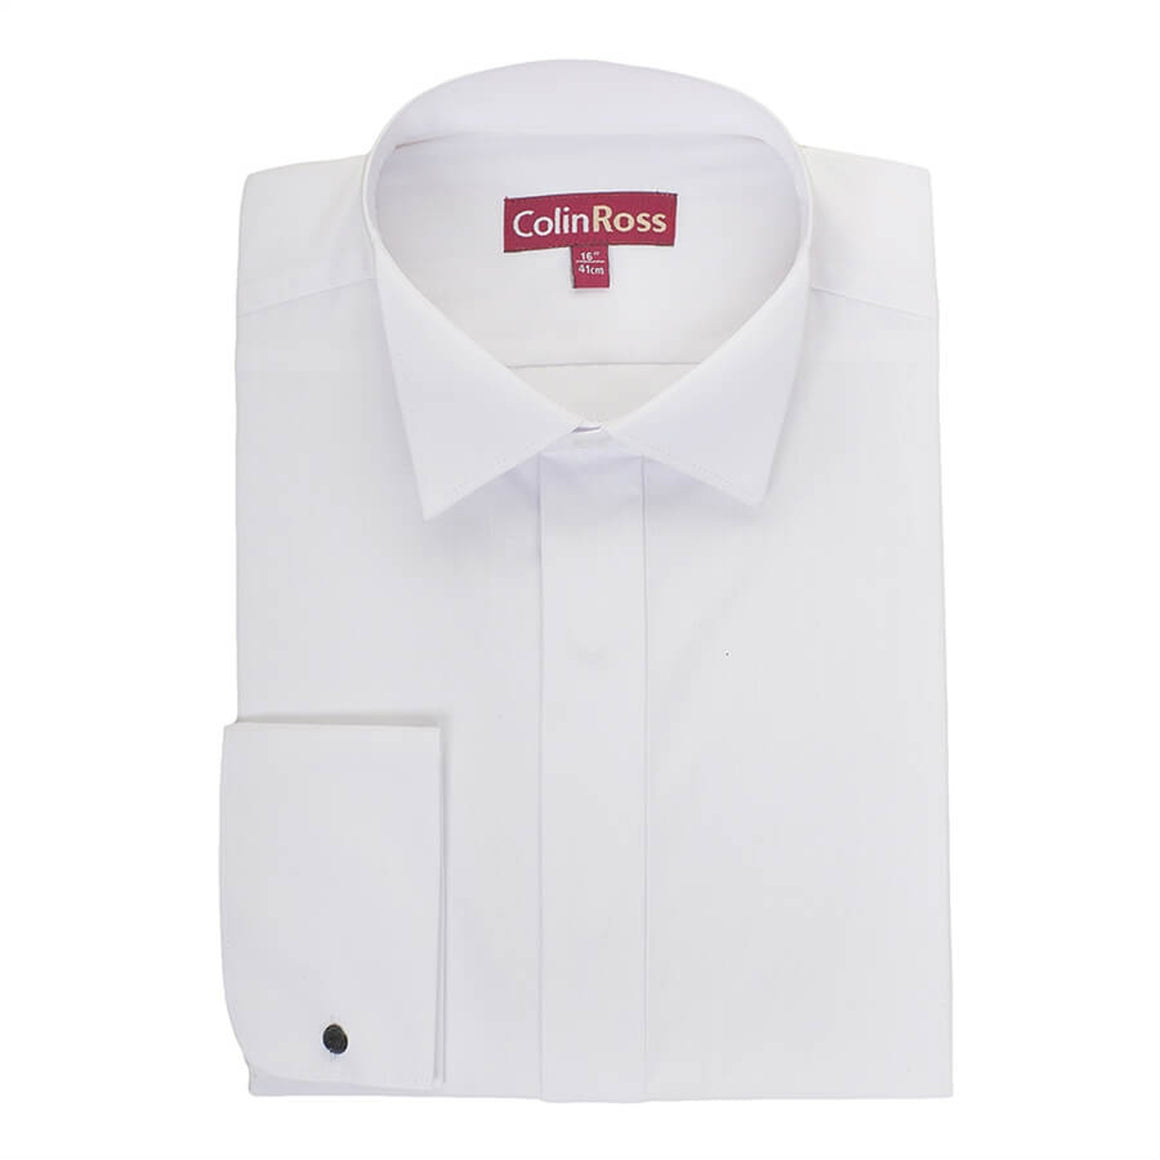 Plain Swept Wing Collar Shirt for Men in White X-Long Length